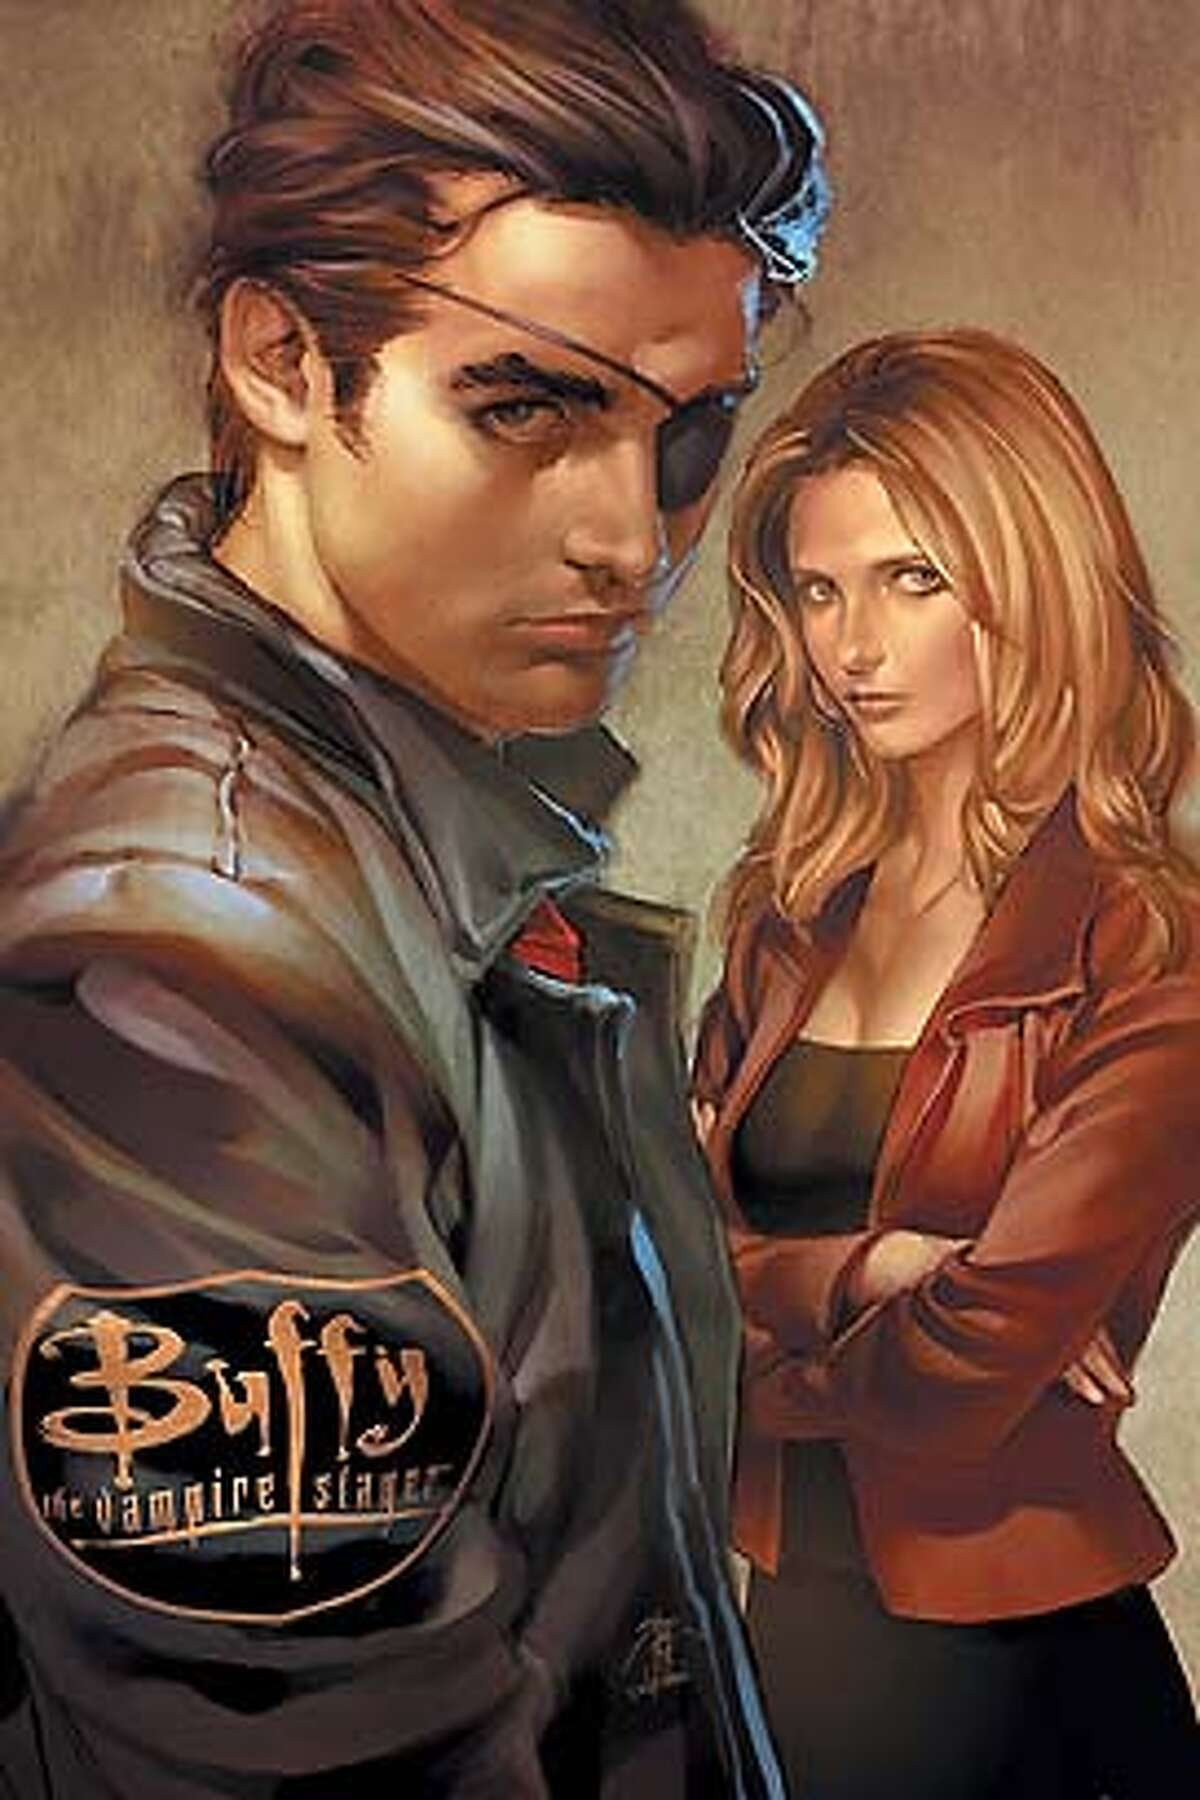 I will download the Buffy Season 8 #2 cover art